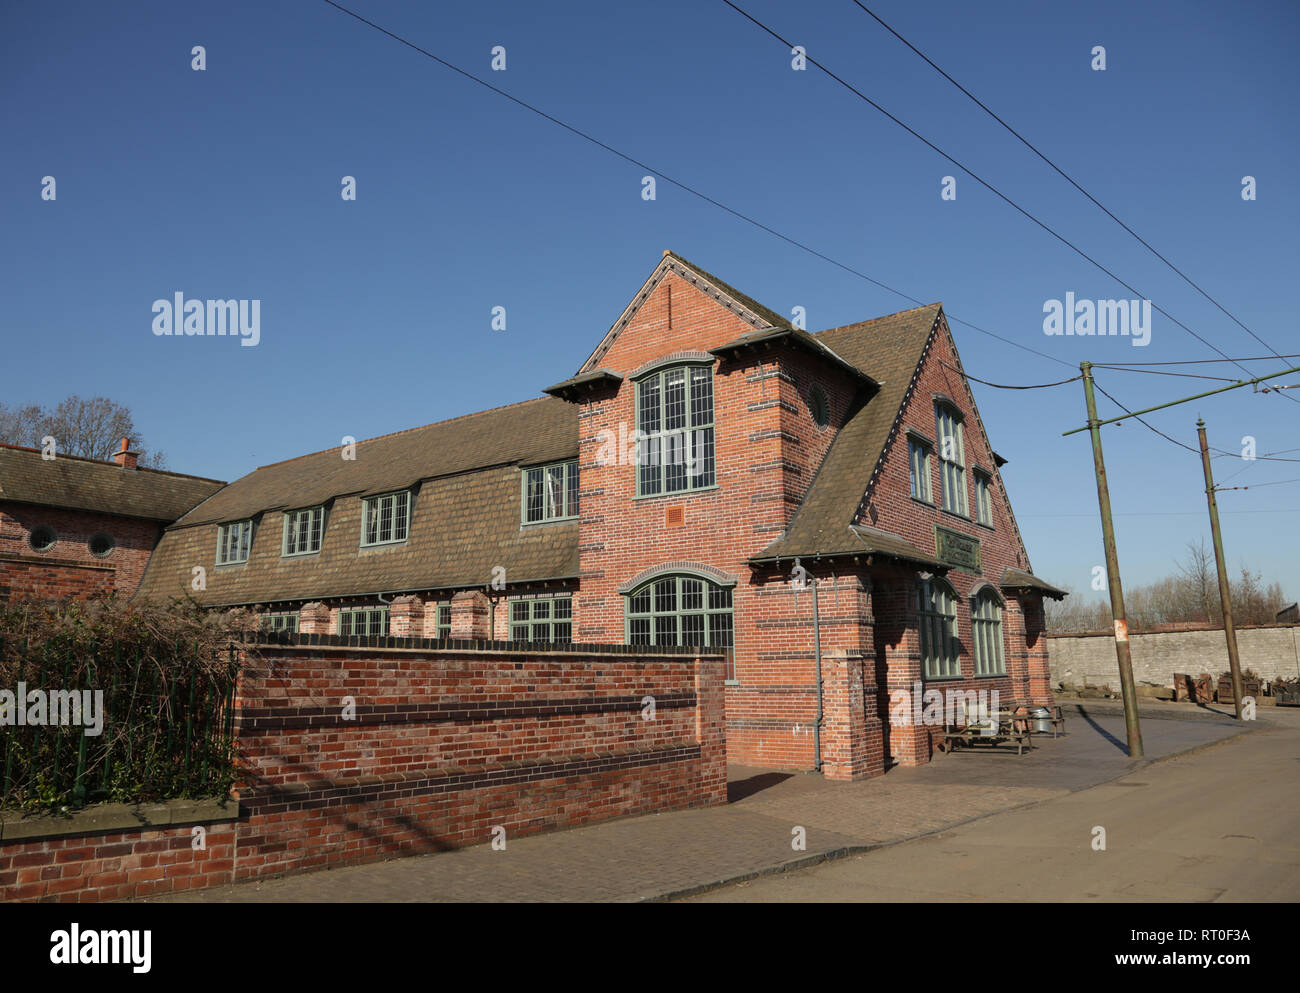 The workers institute building at the Black country living museum, Dudley, West midlands. England, UK. - Stock Image